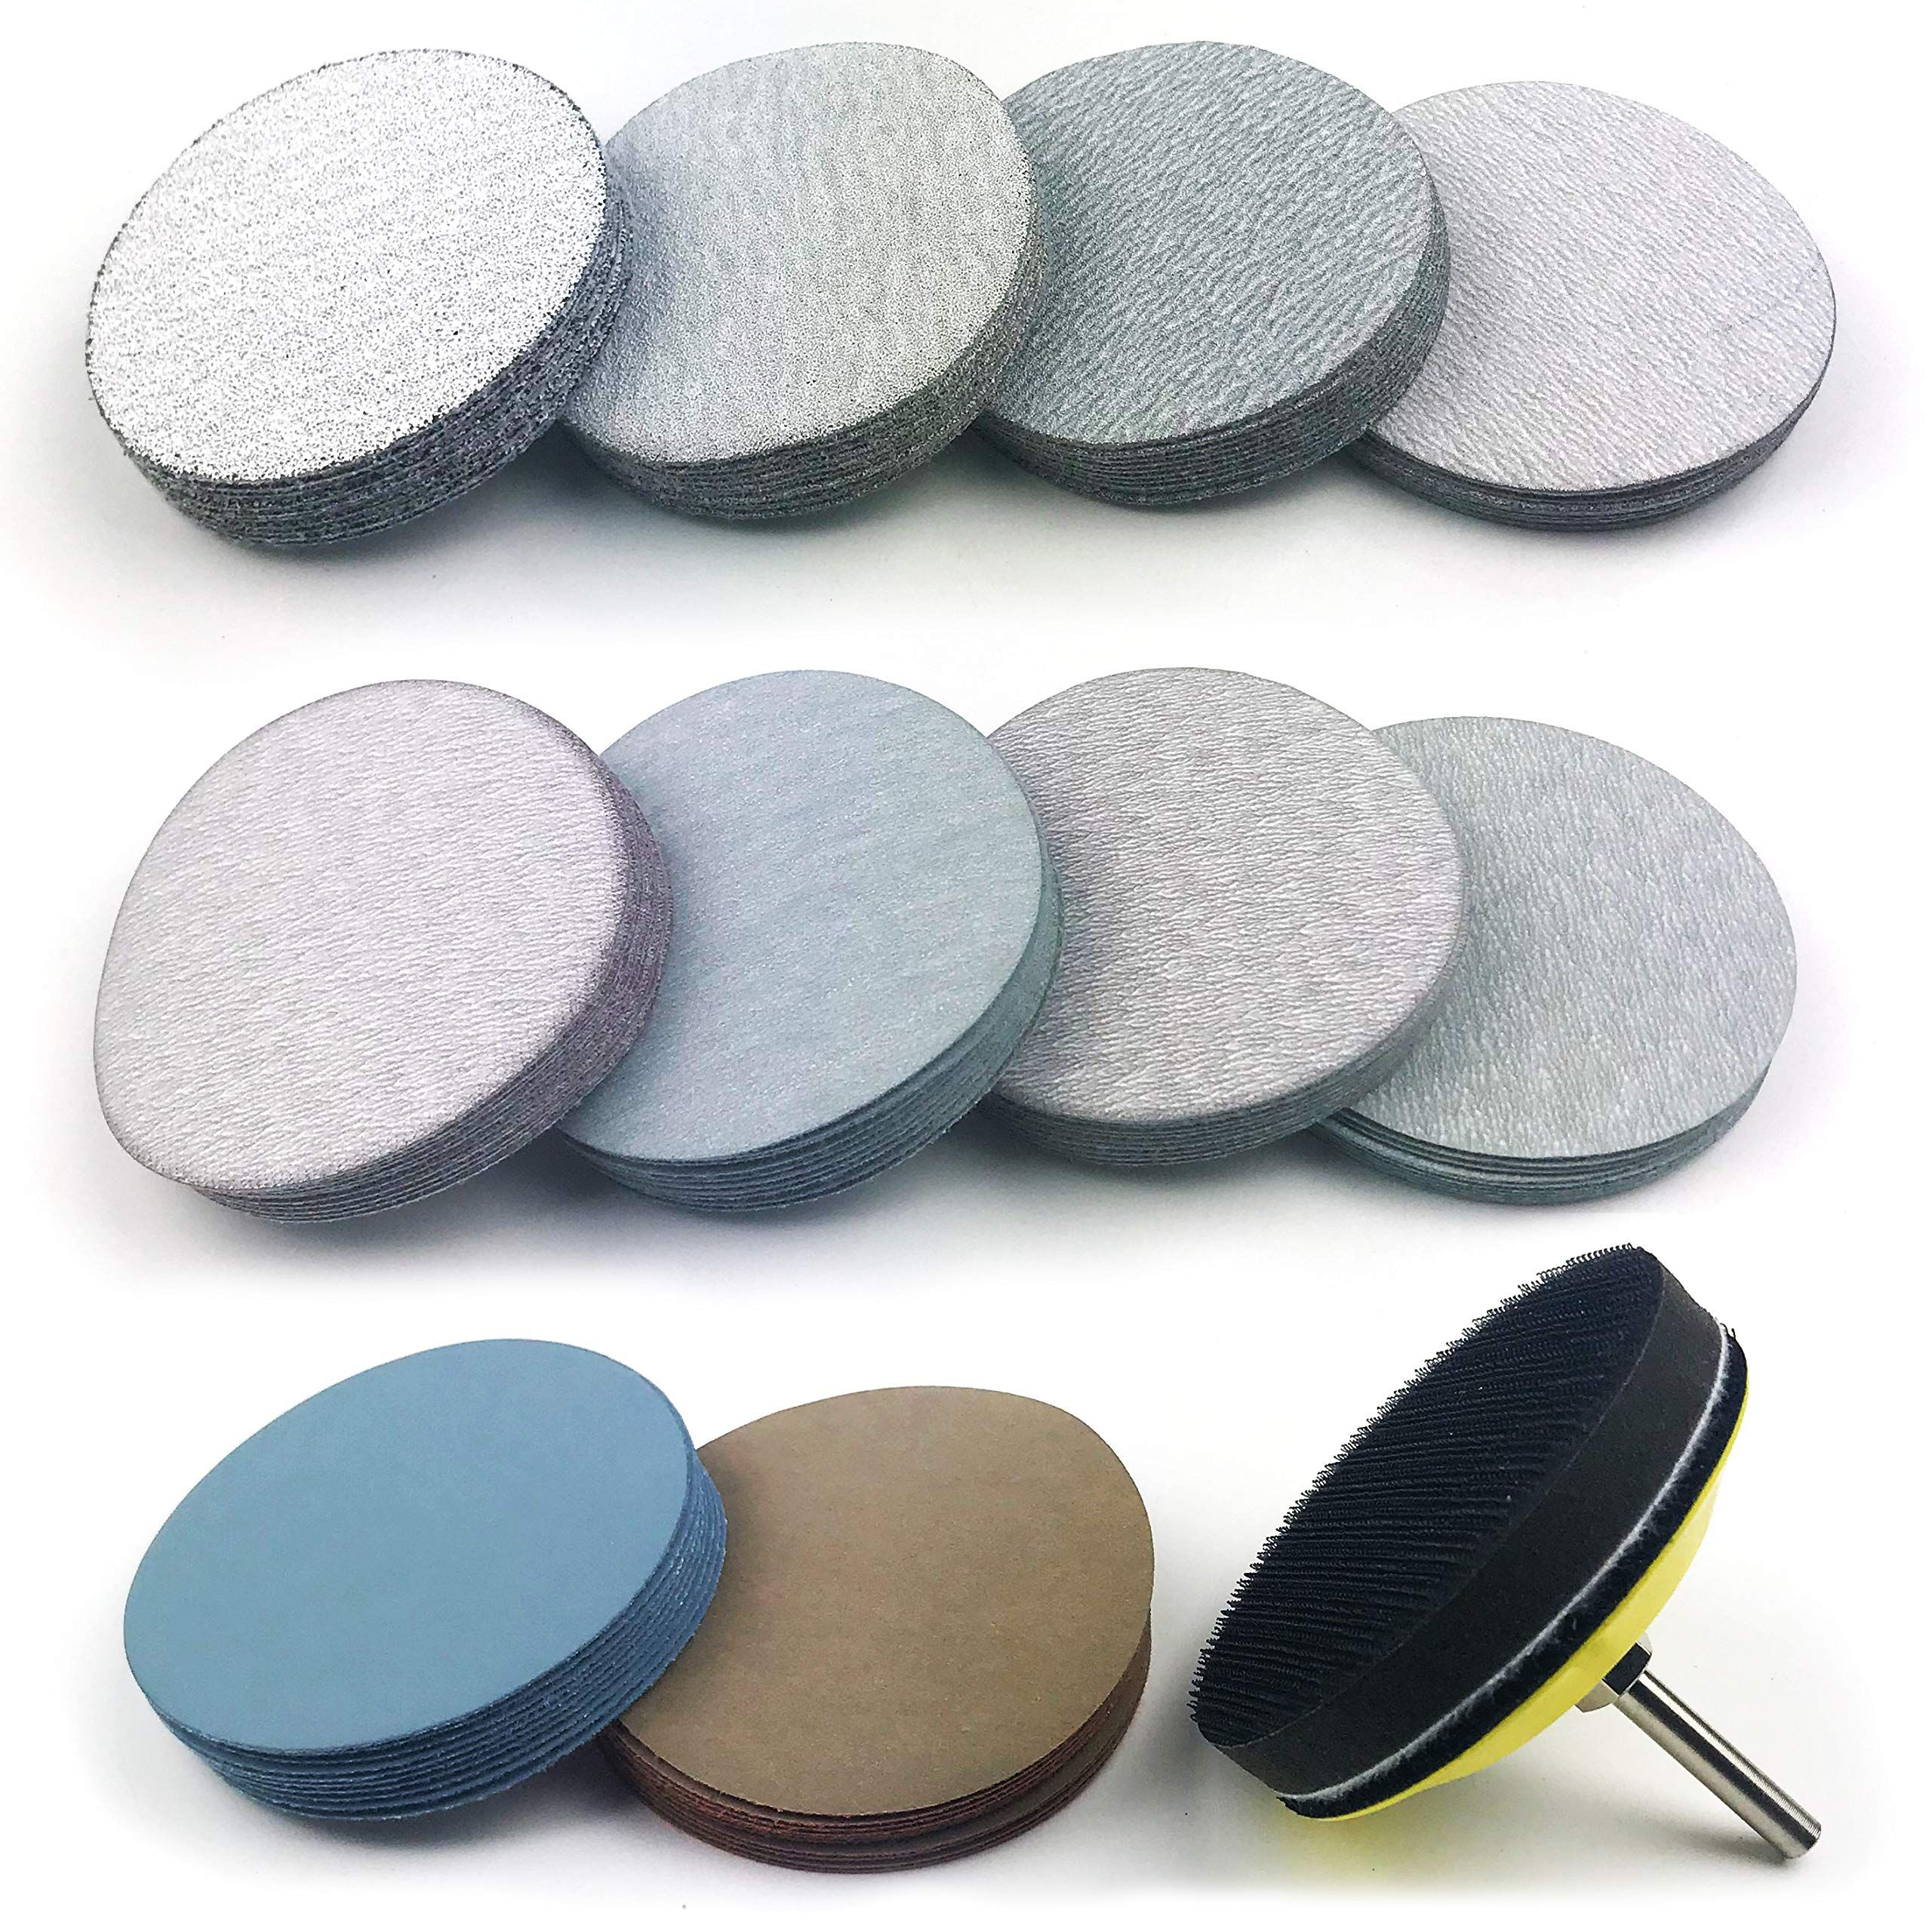 3 Inch Assorted Grits White Dry And Waterproof Wet Dry Hook And Loop Sanding Discs With 1 4 Inch Shank Sanding Pad Soft Foam Backed In 2020 Sanding Foam Wet And Dry